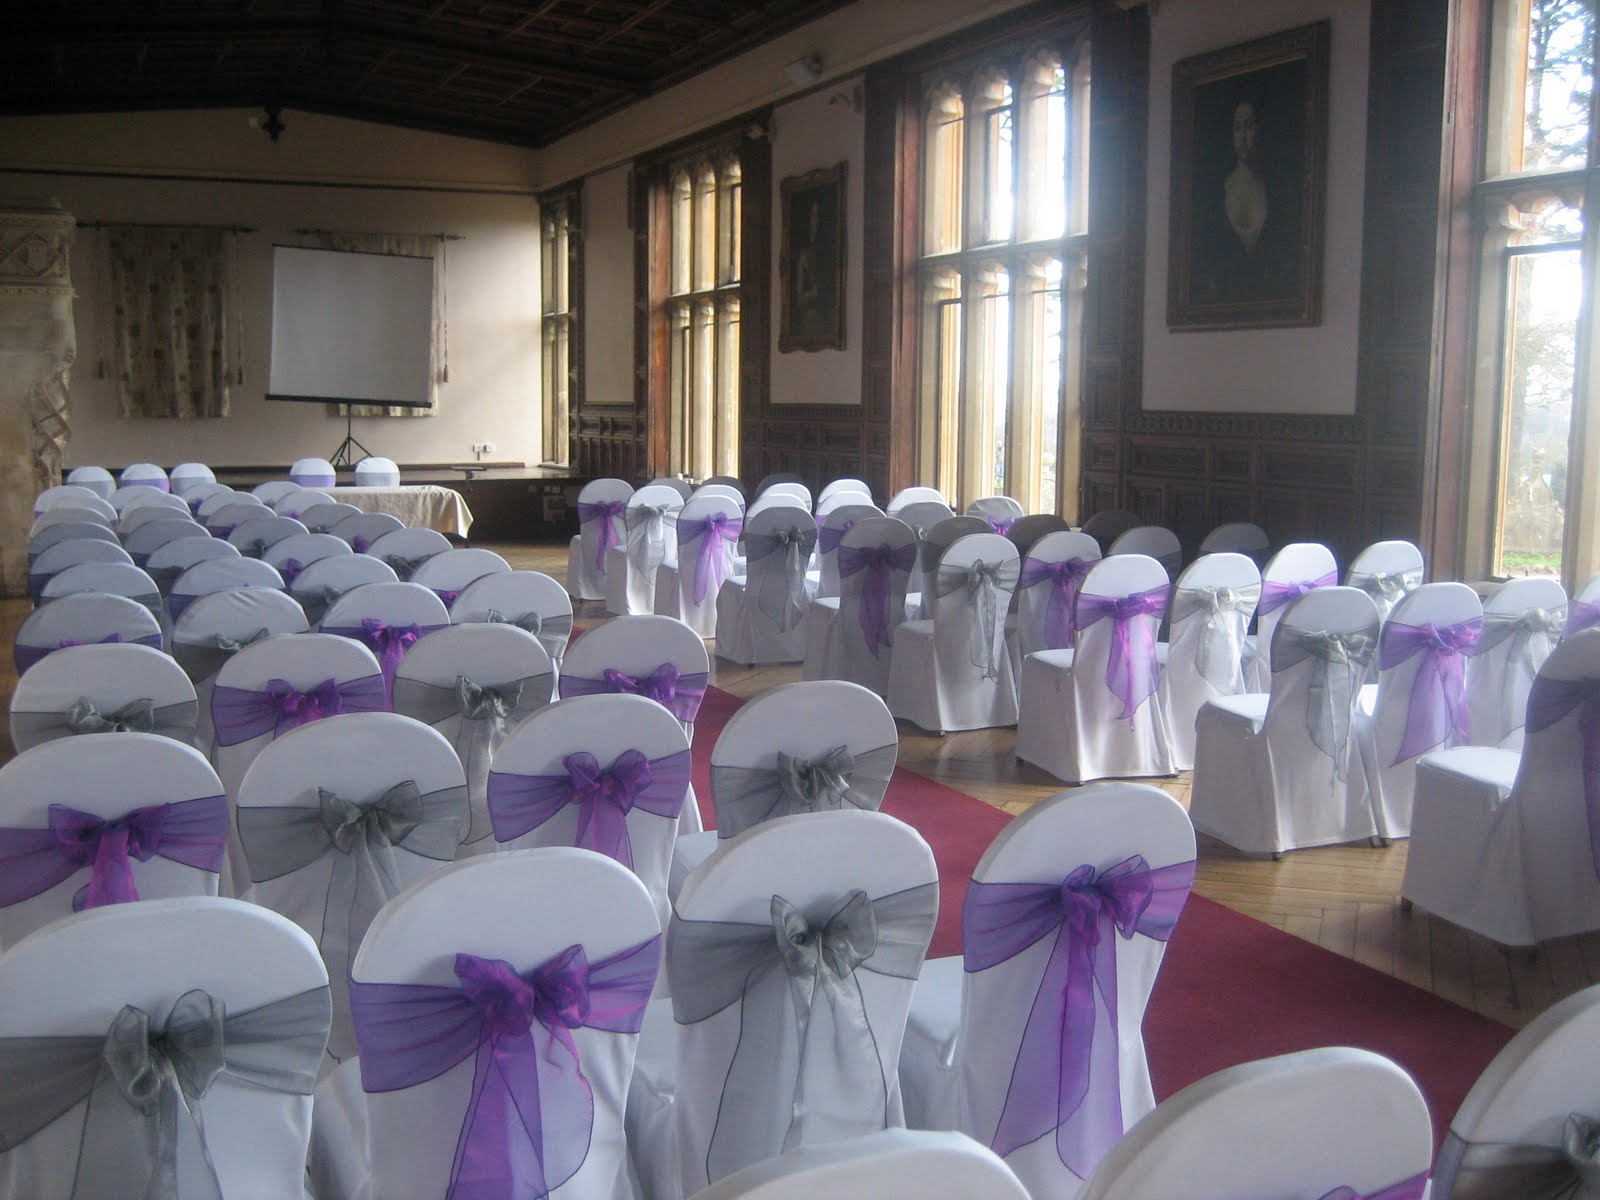 Chair Cover Hire Exeter Posture Corrector Www Southwestchaircovers Co Uk Ashton Court Mansion Bristol We Have Covers Perfectly Made To Measure For The Unusual Shaped Banqueting Chairs At